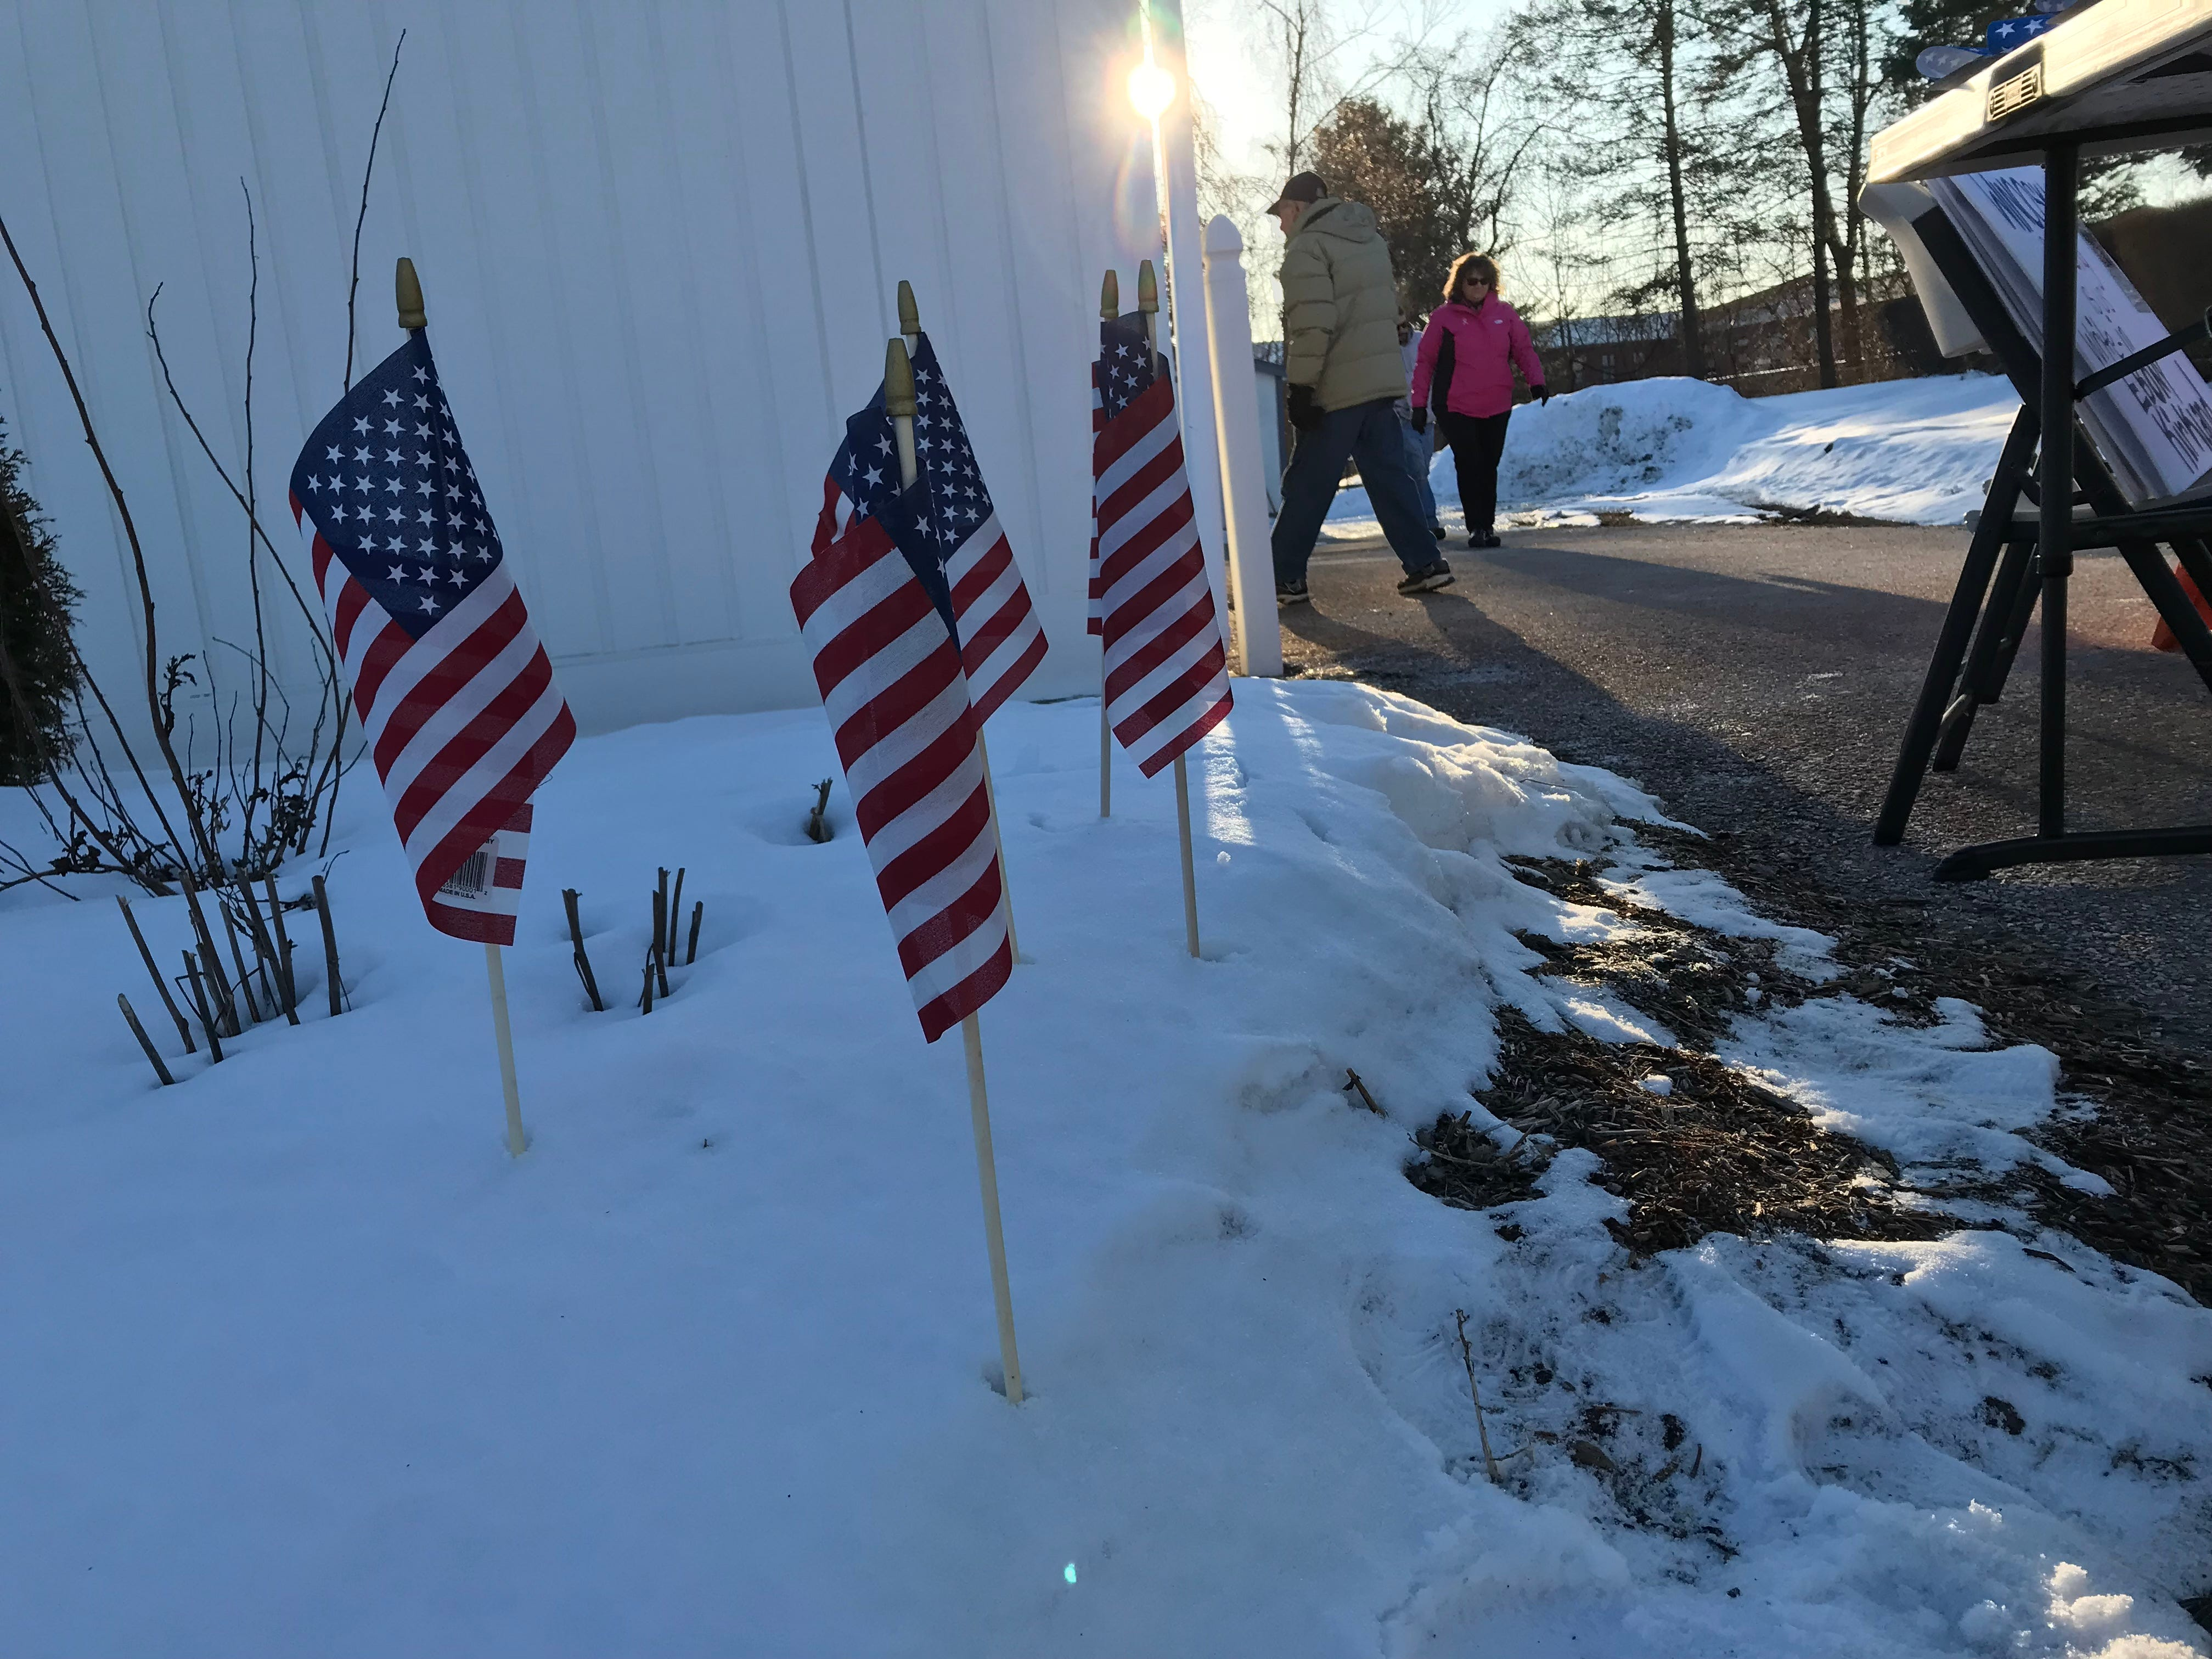 American flags were planted in snow outside of the Winooski Senior Center on Town Meeting Day, March 5, 2019.